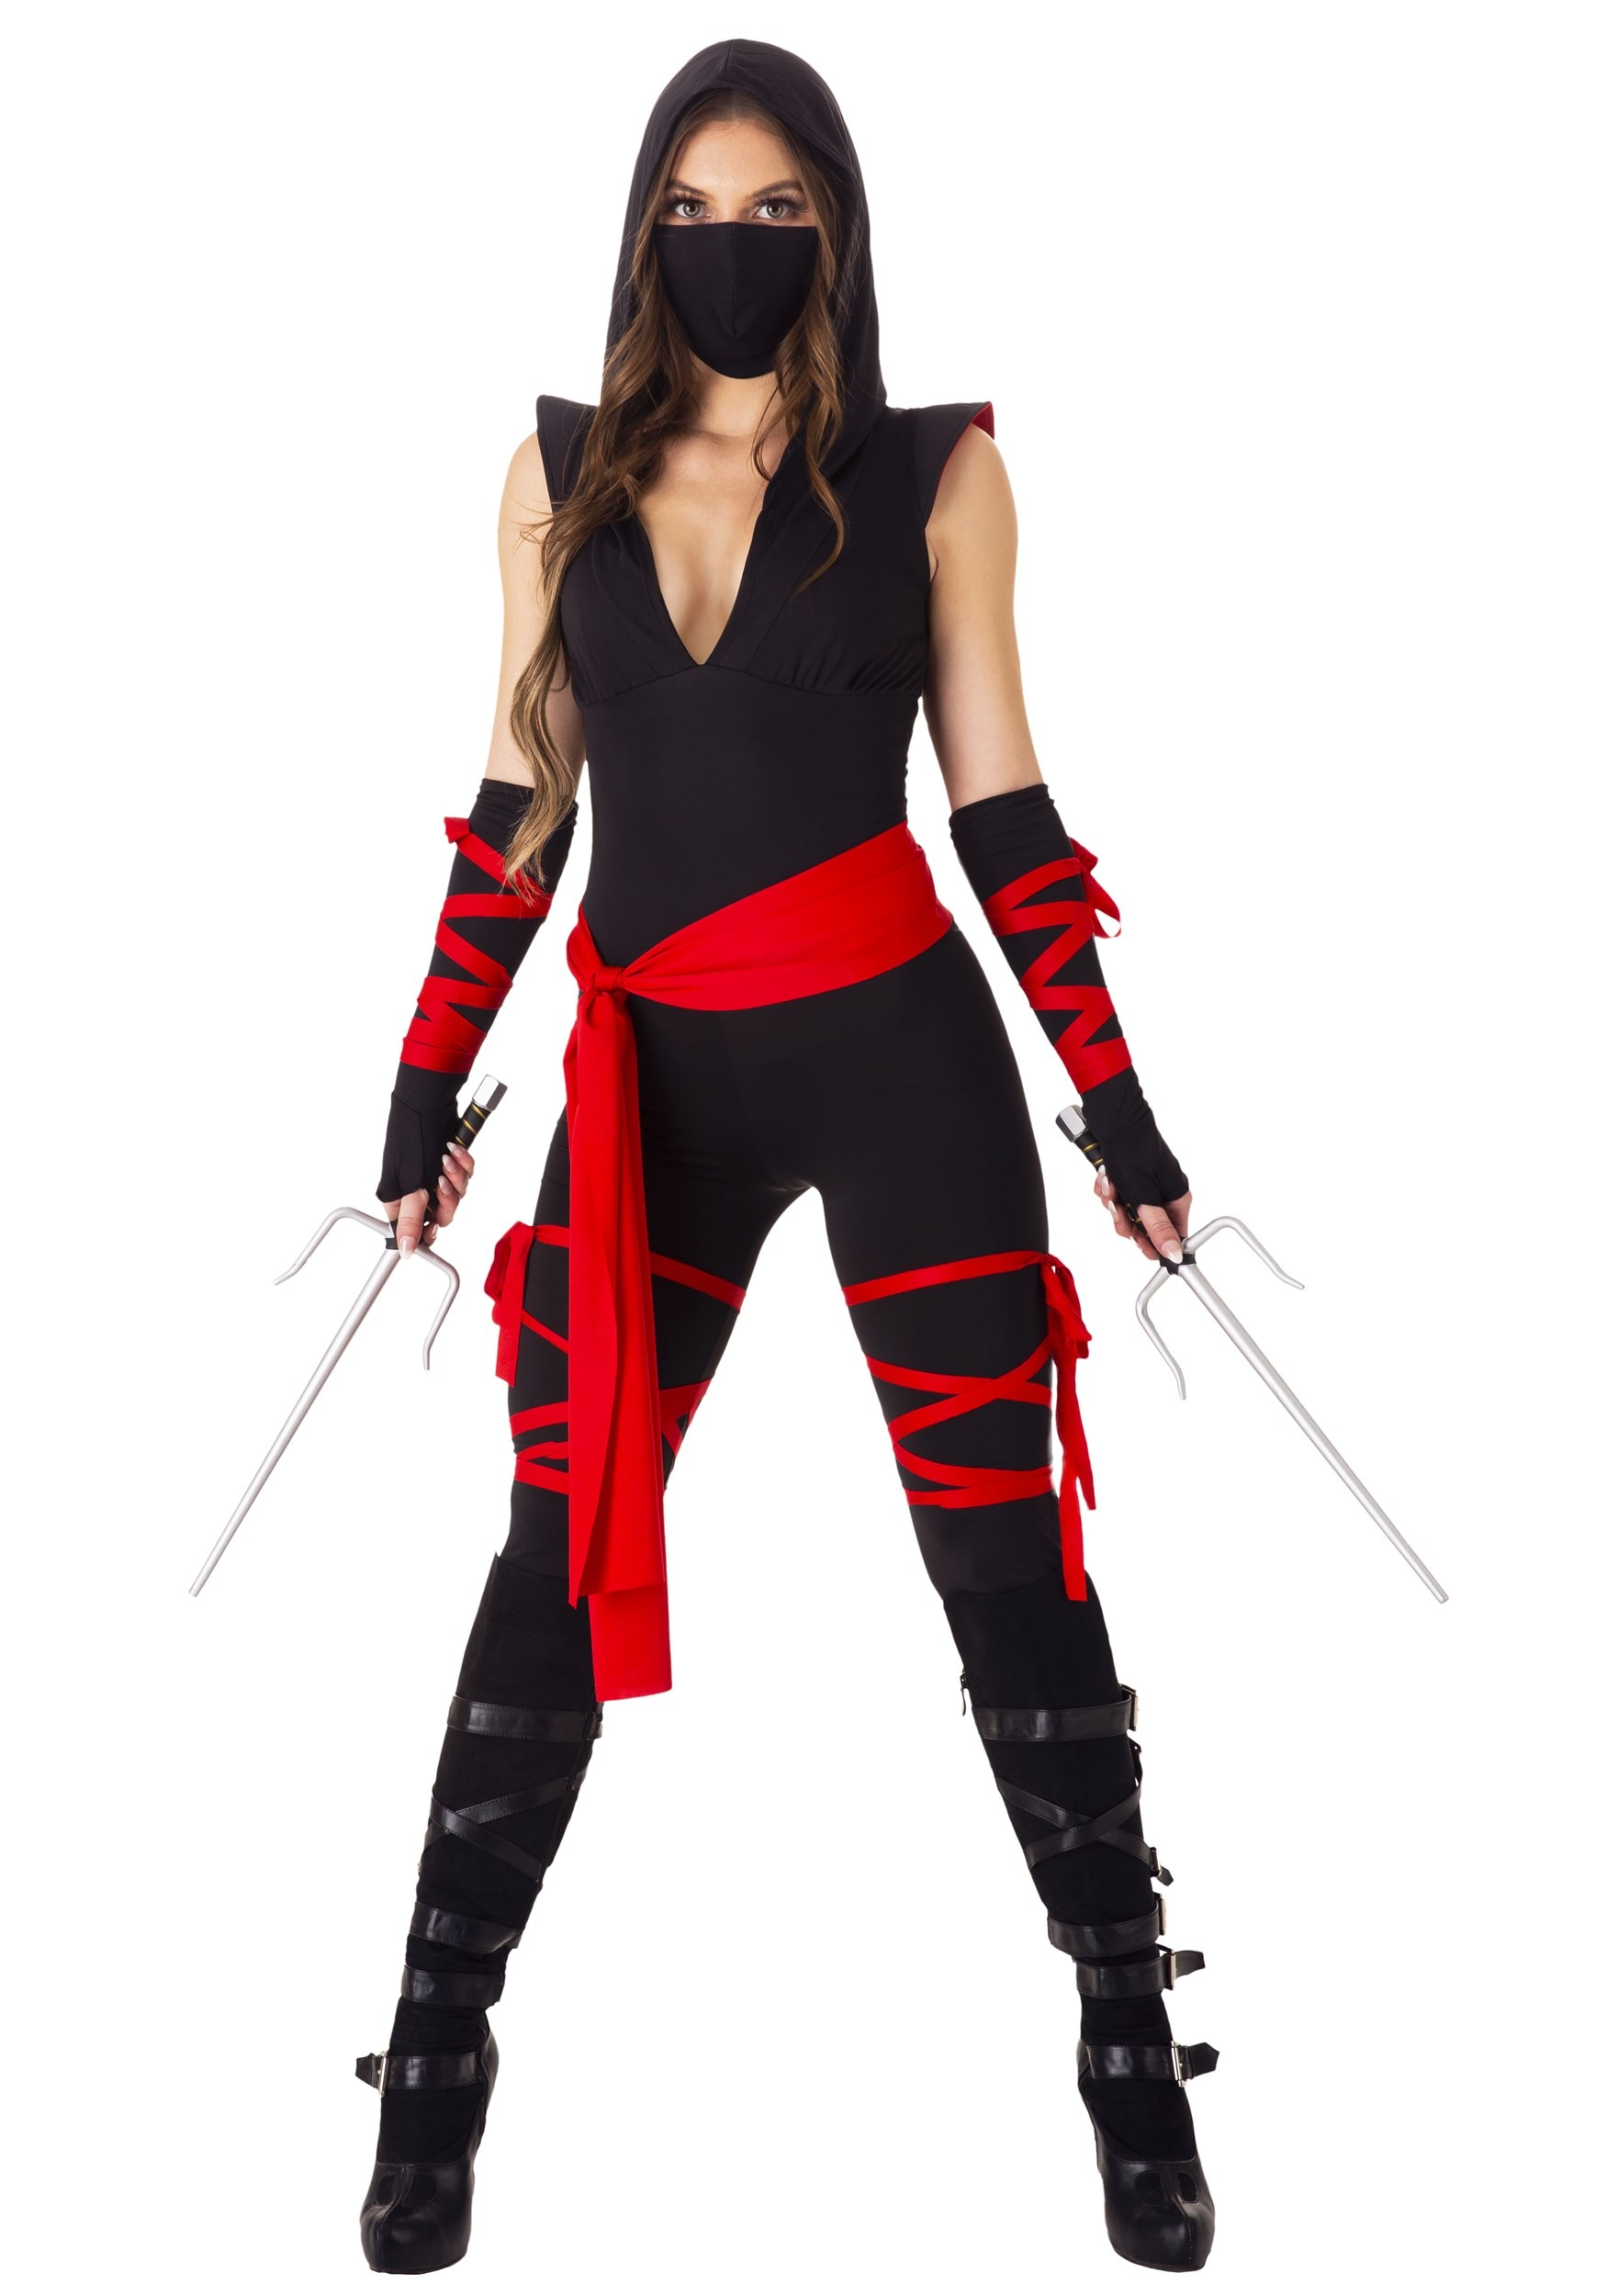 Sexy Deadly Ninja Costume for Women